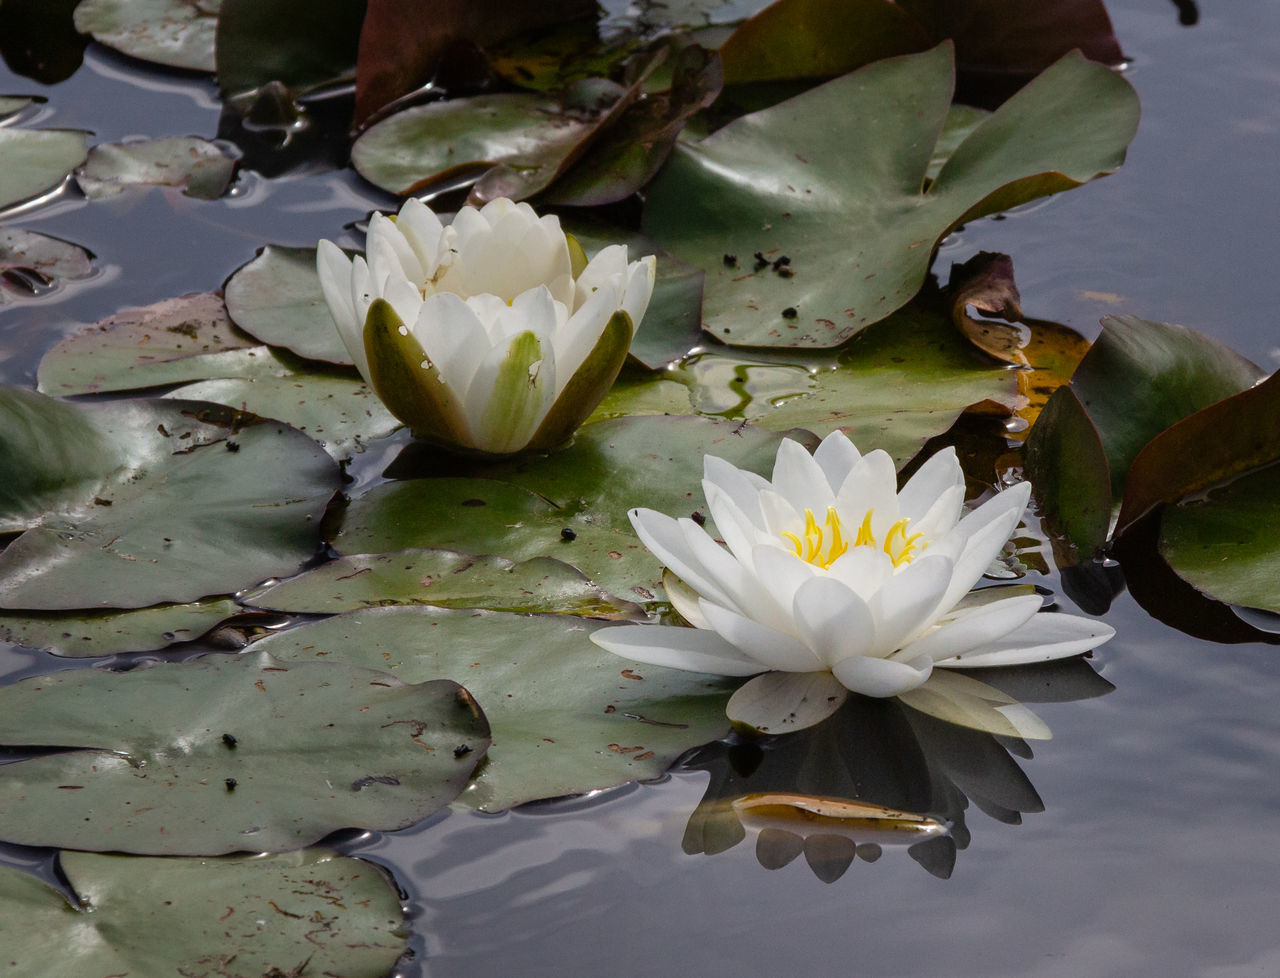 flowering plant, flower, plant, beauty in nature, fragility, vulnerability, water, water lily, petal, lake, freshness, growth, close-up, nature, inflorescence, flower head, leaf, floating on water, no people, pollen, lotus water lily, flower arrangement